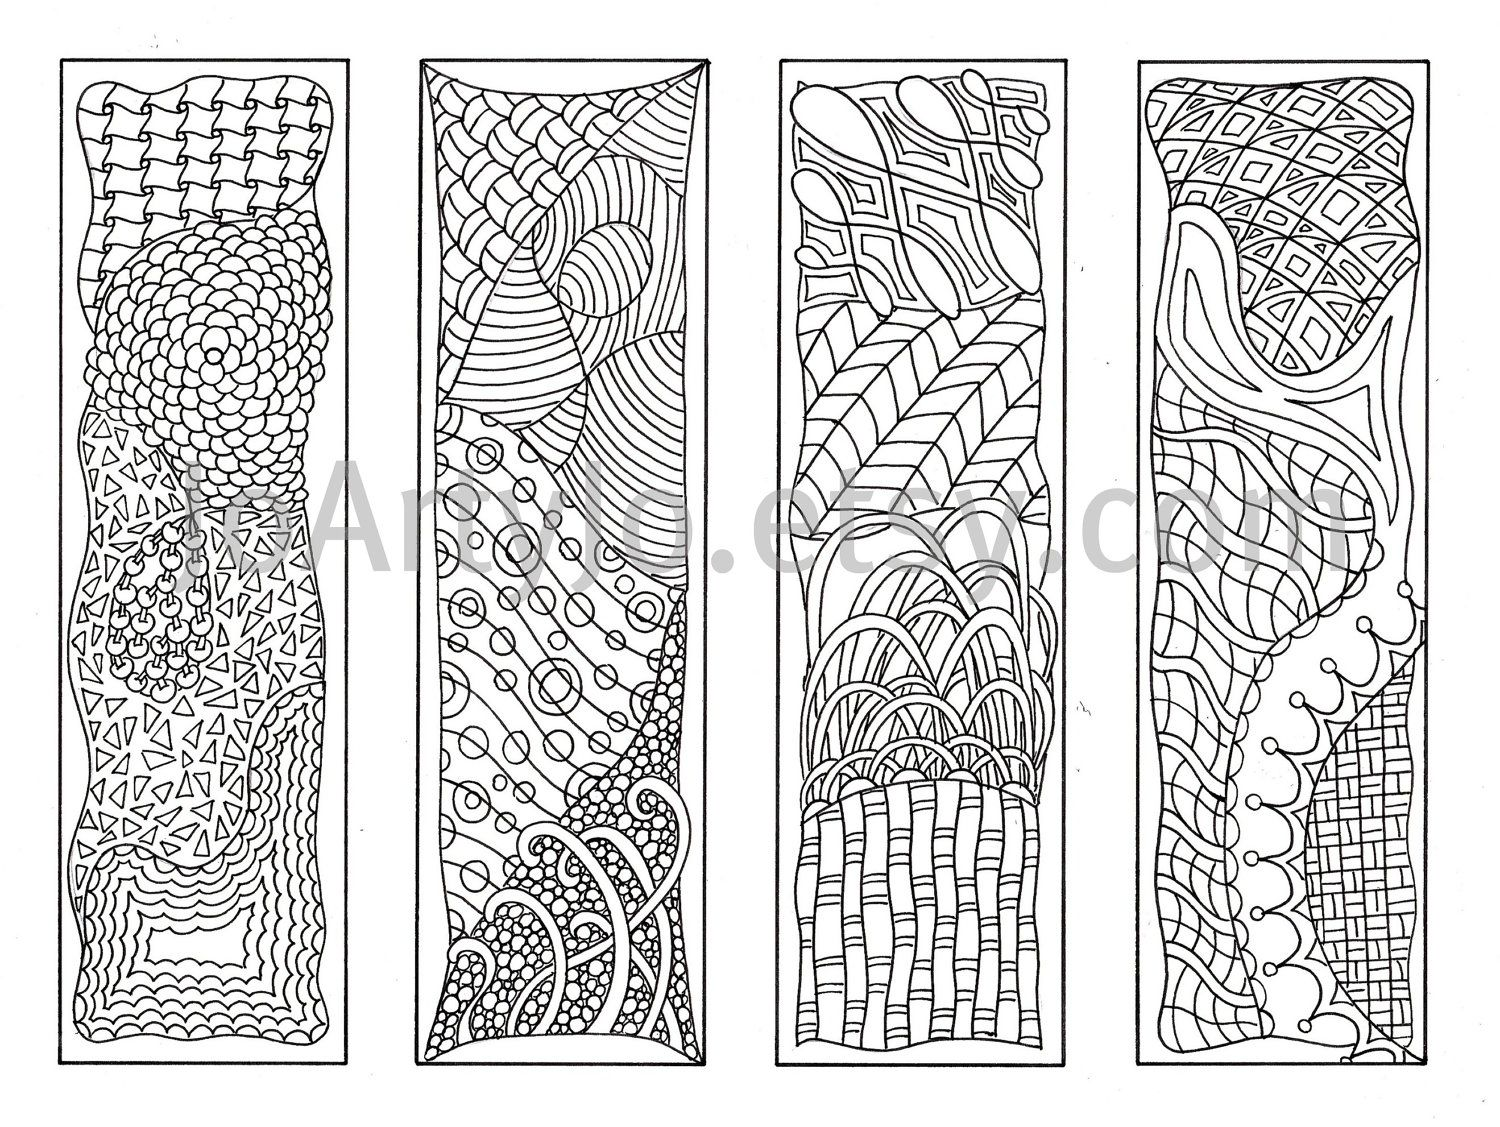 Zentangle Inspired Printable Bookmarks to Color, Zendoodle Art ...